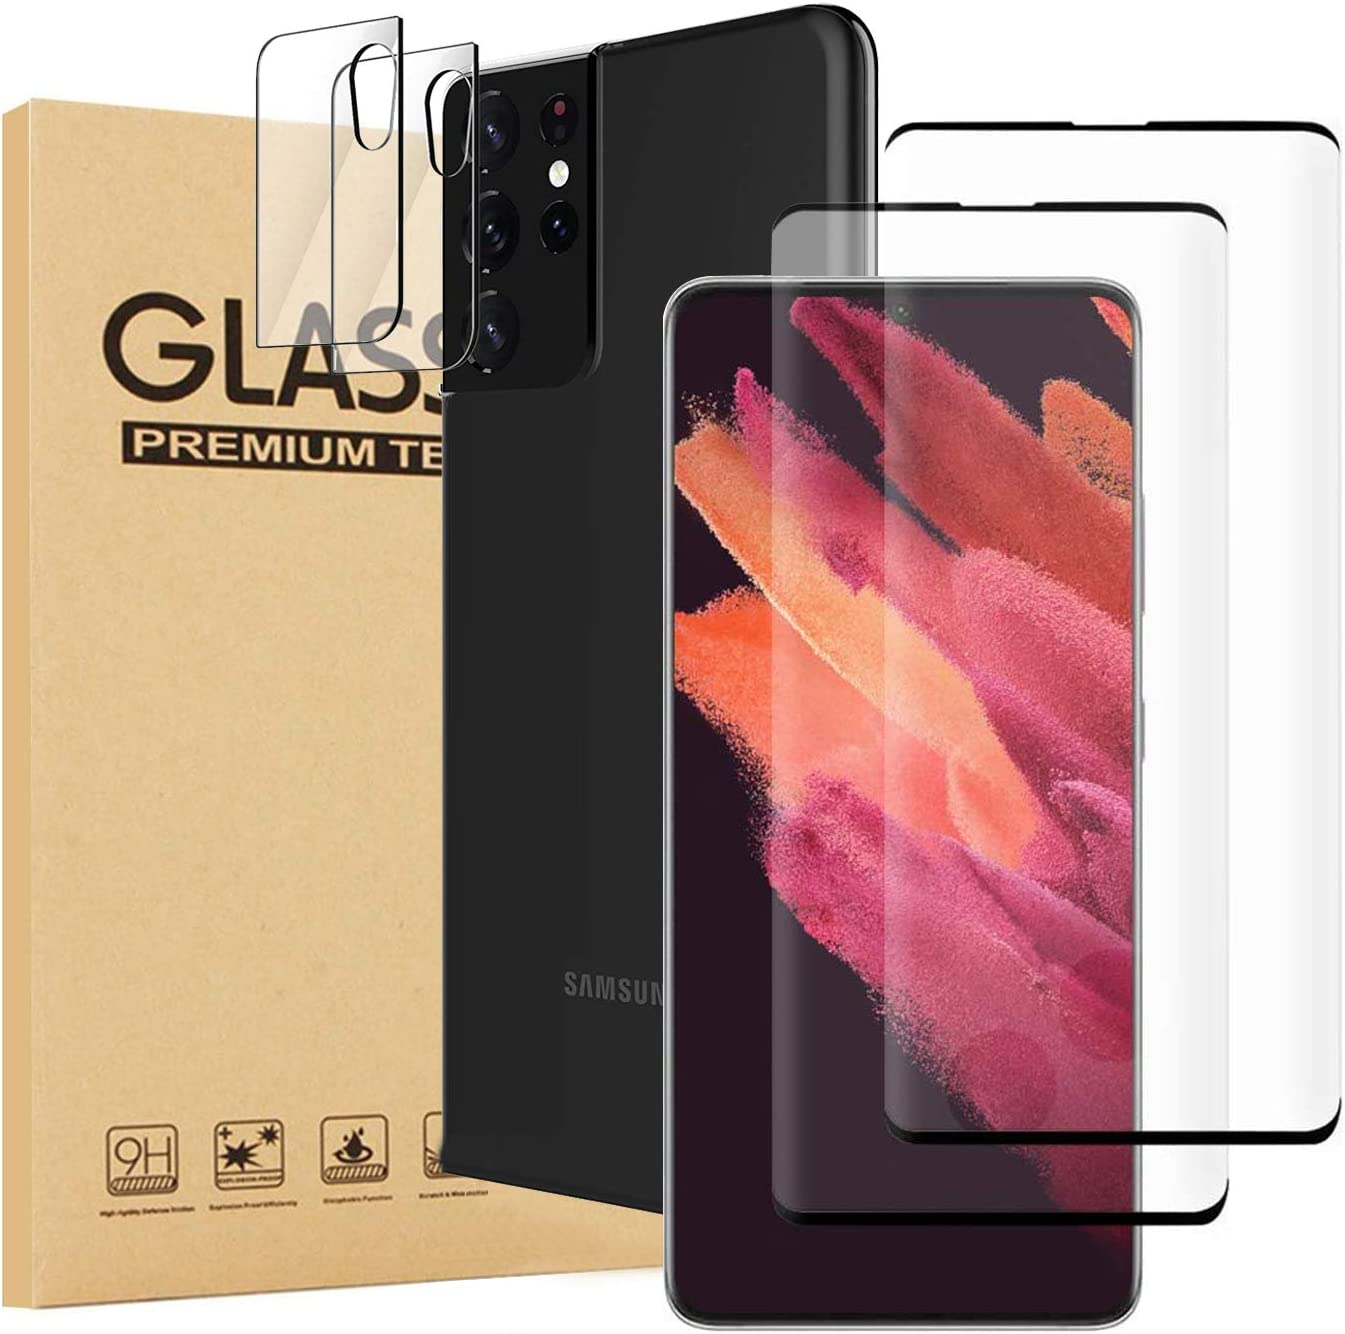 4 Pack Ankoe 2 Pack Screen Protector + 2 Pack Camera Lens Protector Compatible with Samsung Galaxy S21 Ultra 6.8 inch, Tempered Glass, HD Ultra-Thin, Case Friendly